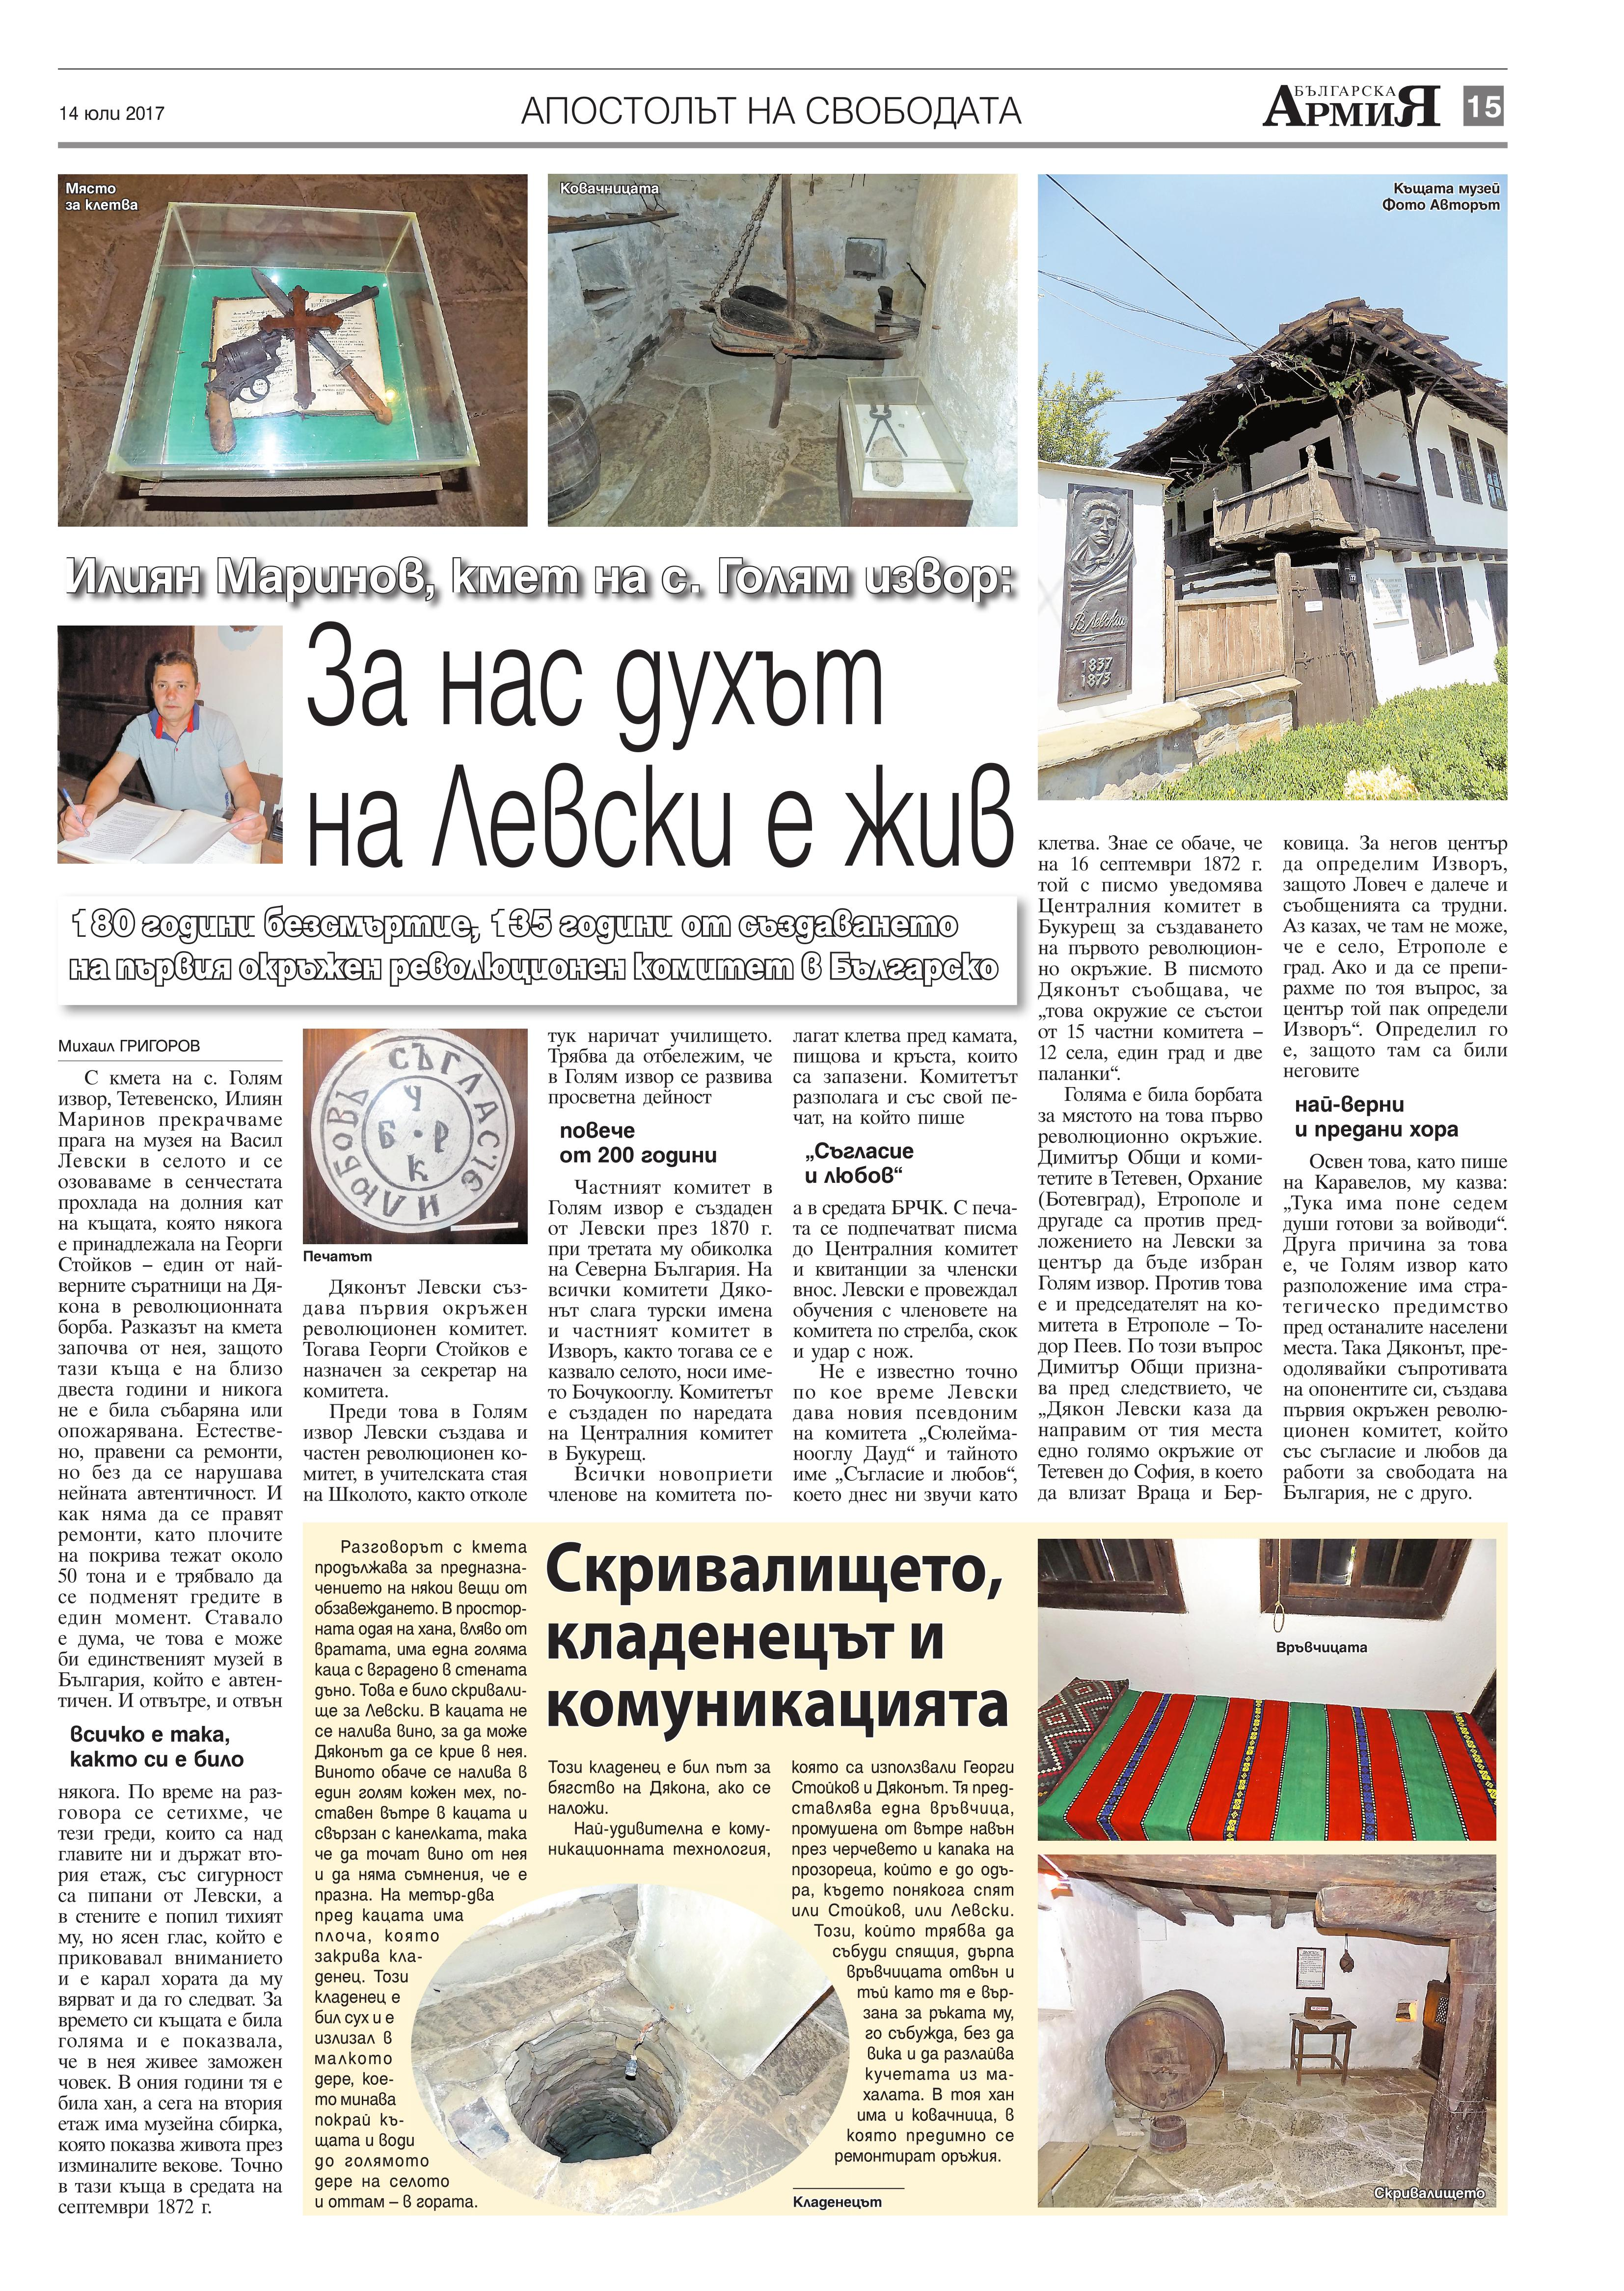 https://www.armymedia.bg/wp-content/uploads/2015/06/15.page1_-25.jpg